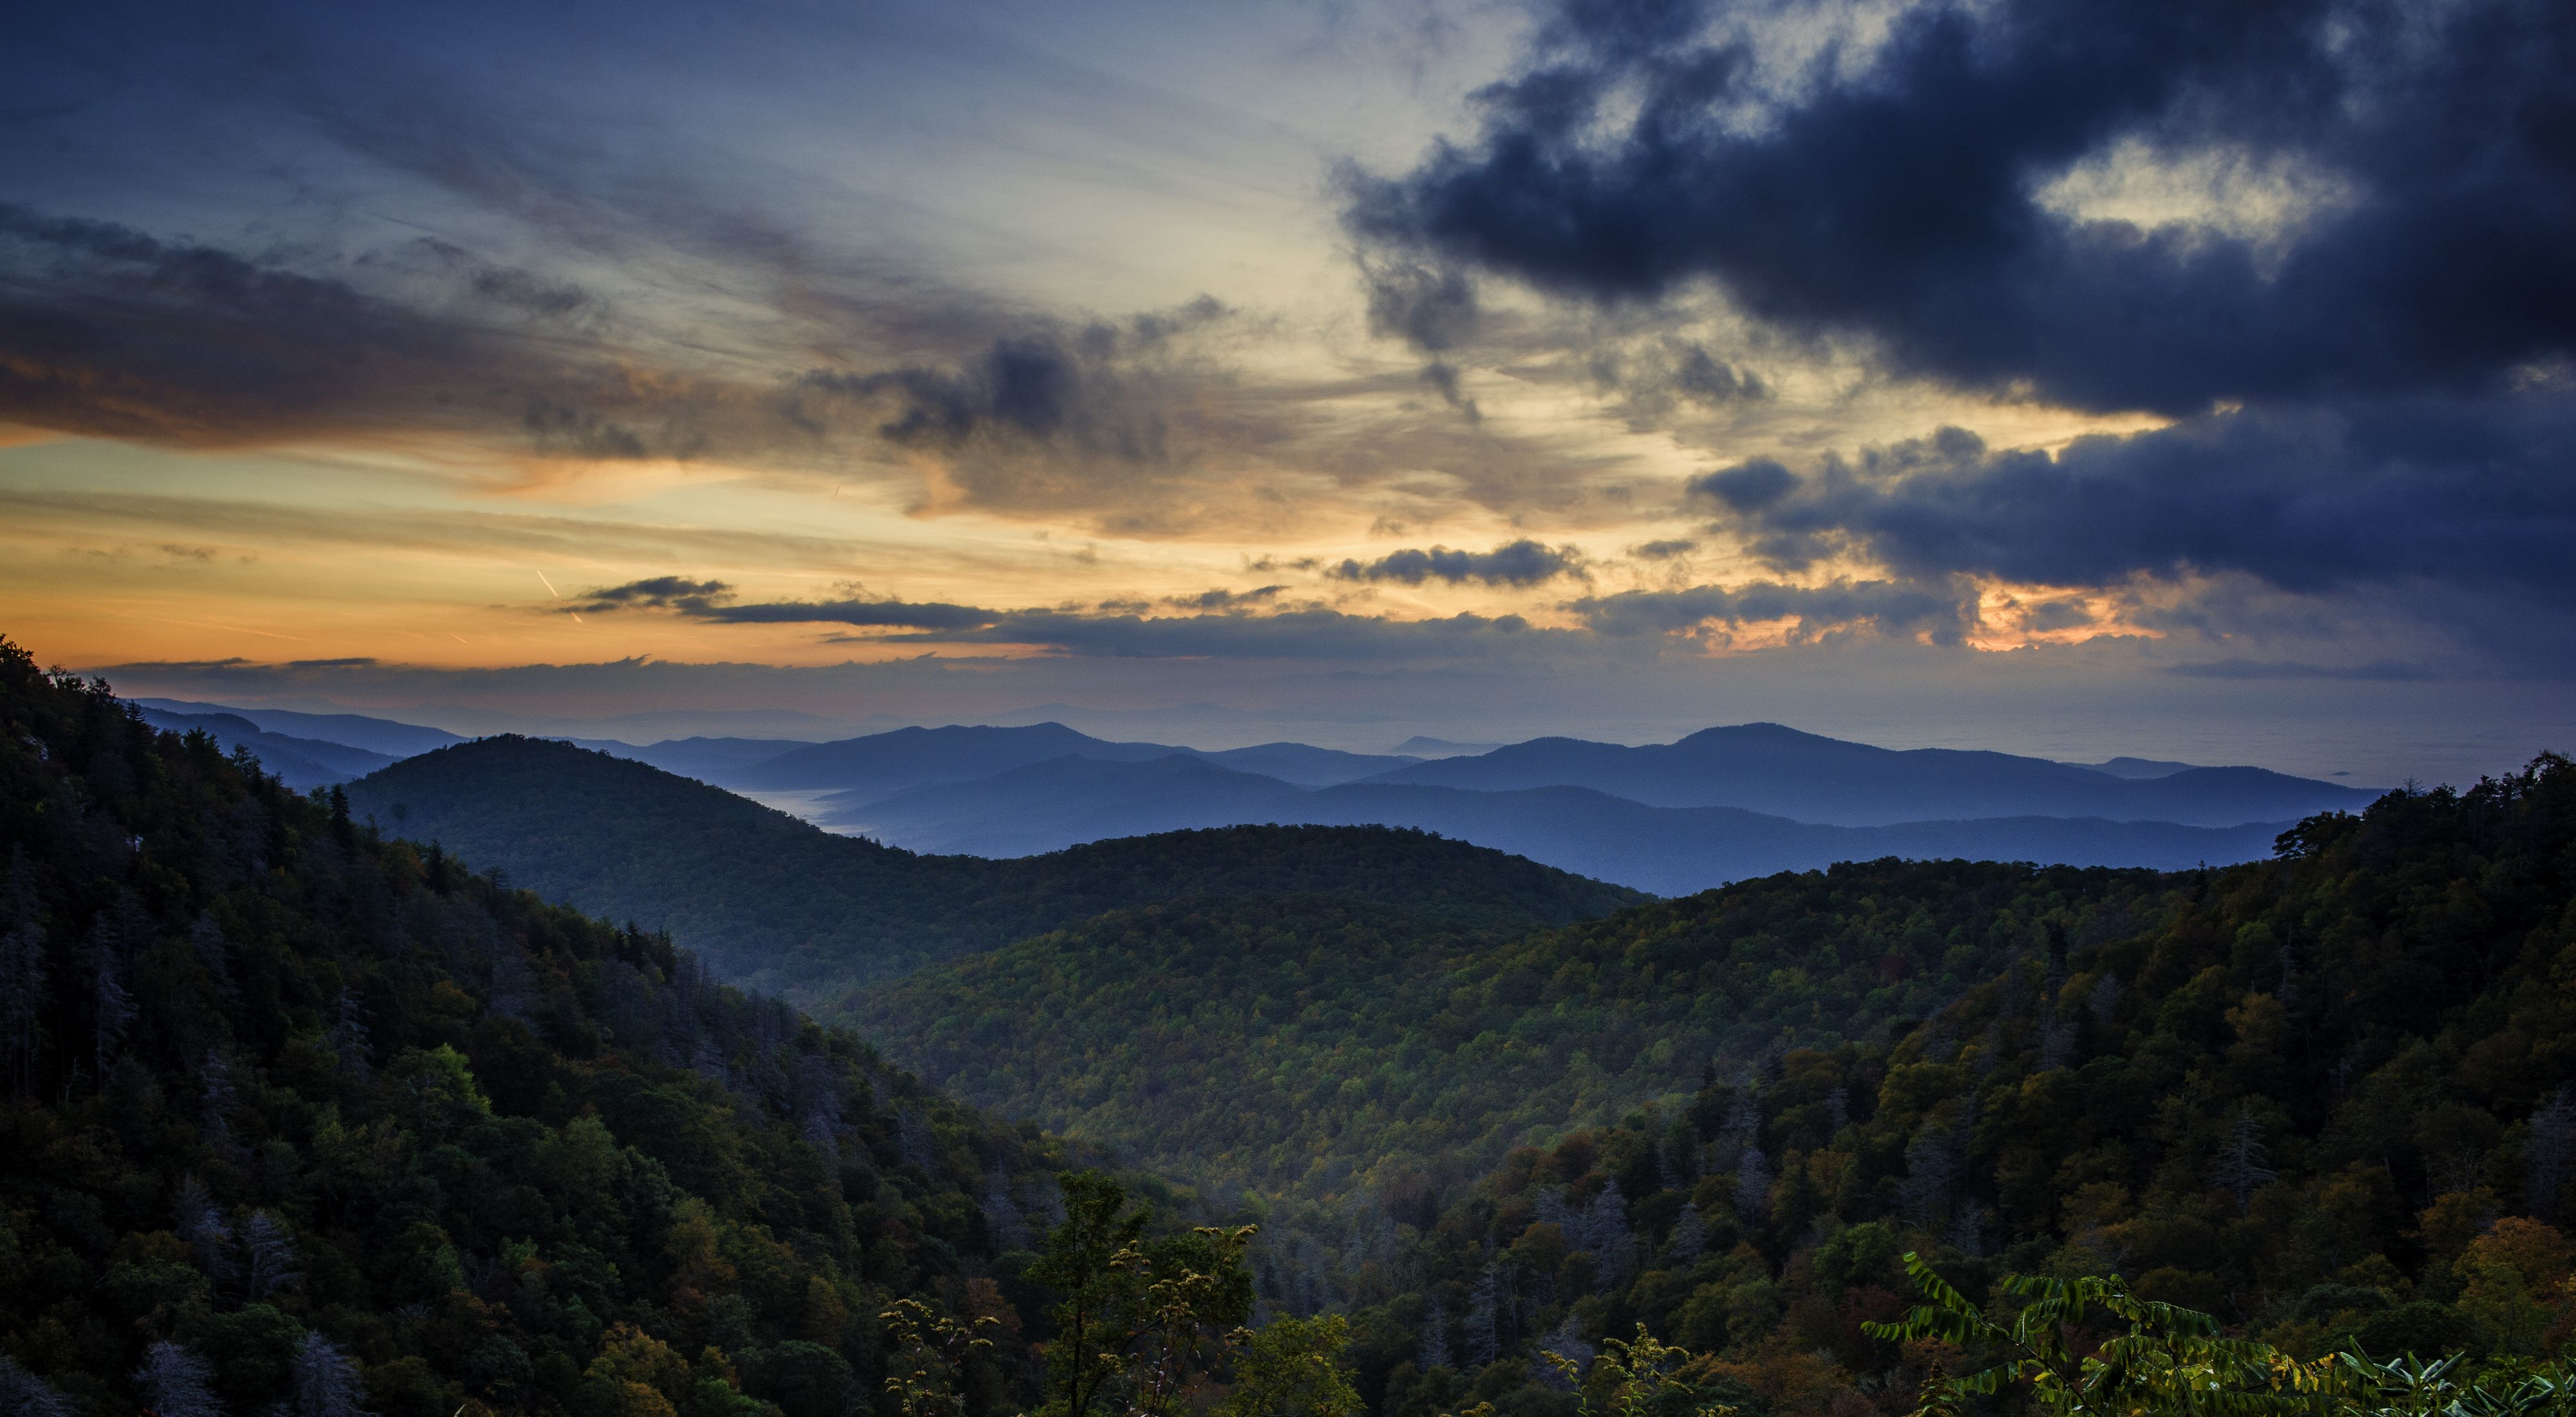 The sun setting over the Blue Ridge Mountains in North Carolina.